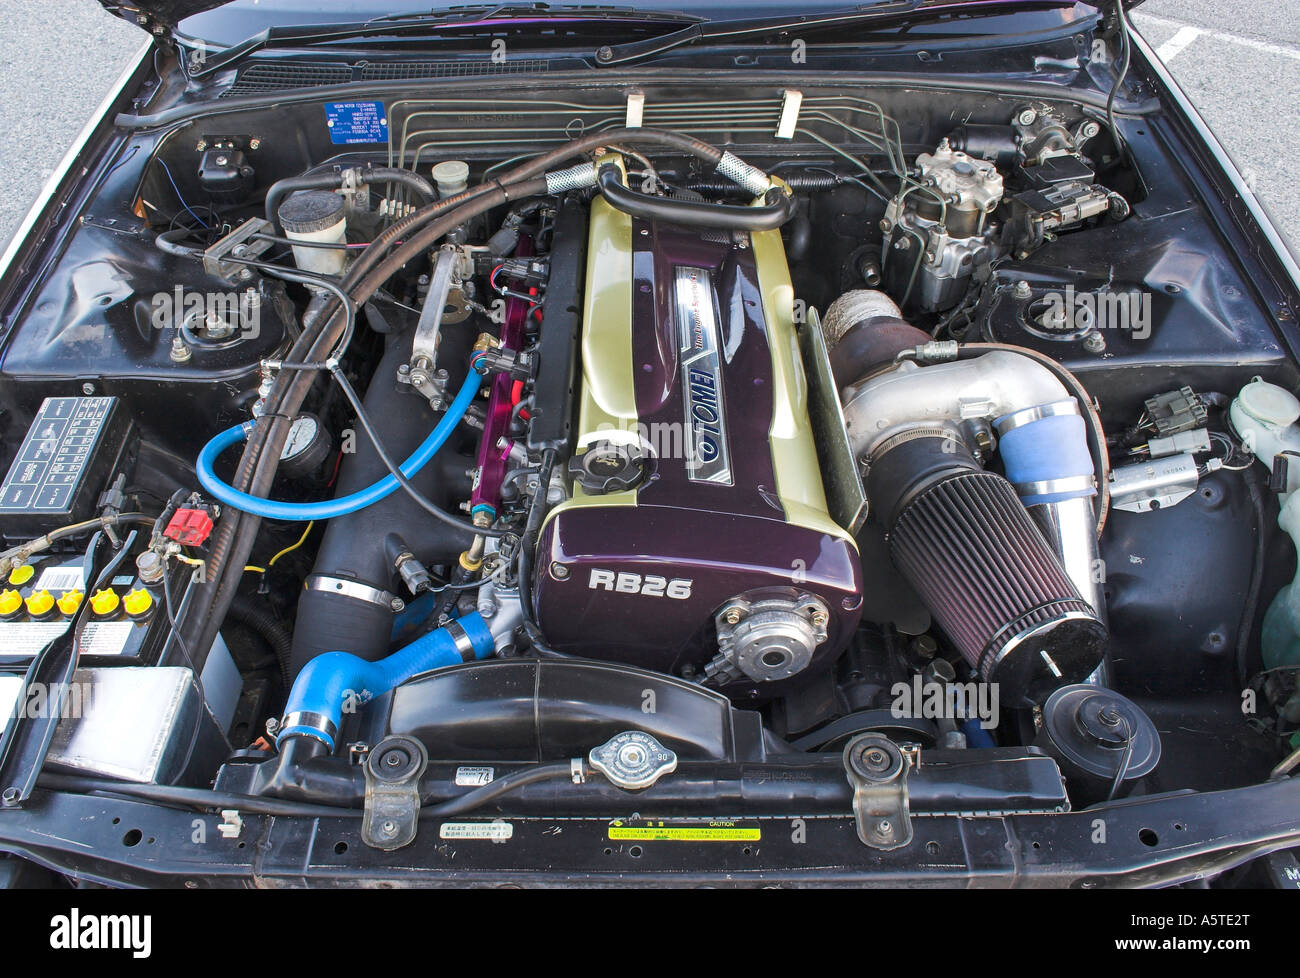 Modified And Performance Orientated Nissan Rb26dett